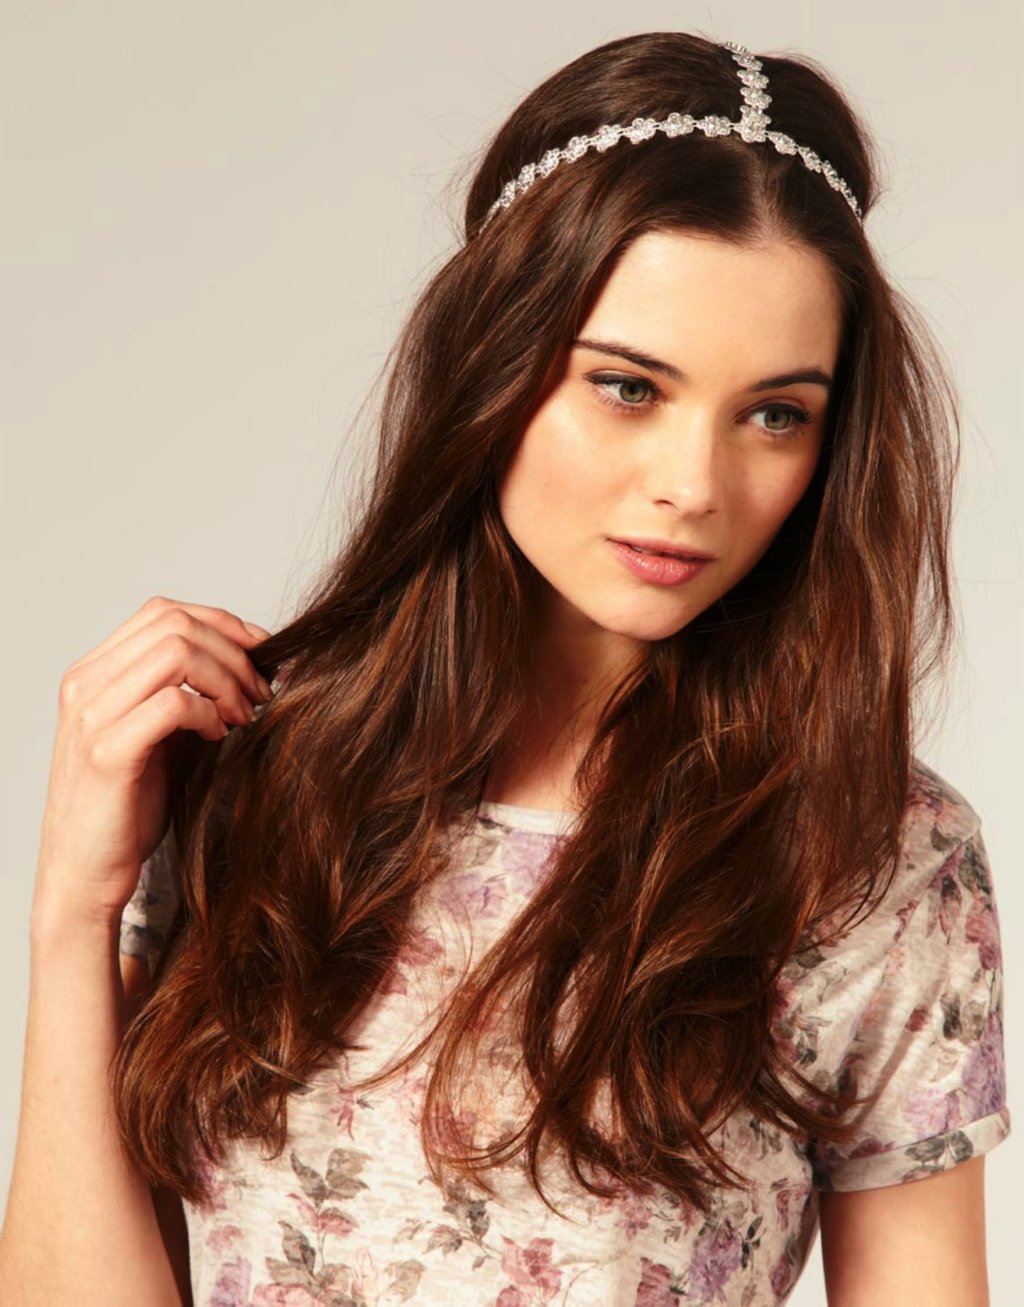 Bohemian-bridal-style-wedding-hairstyle-all-down-embellished-headband.full